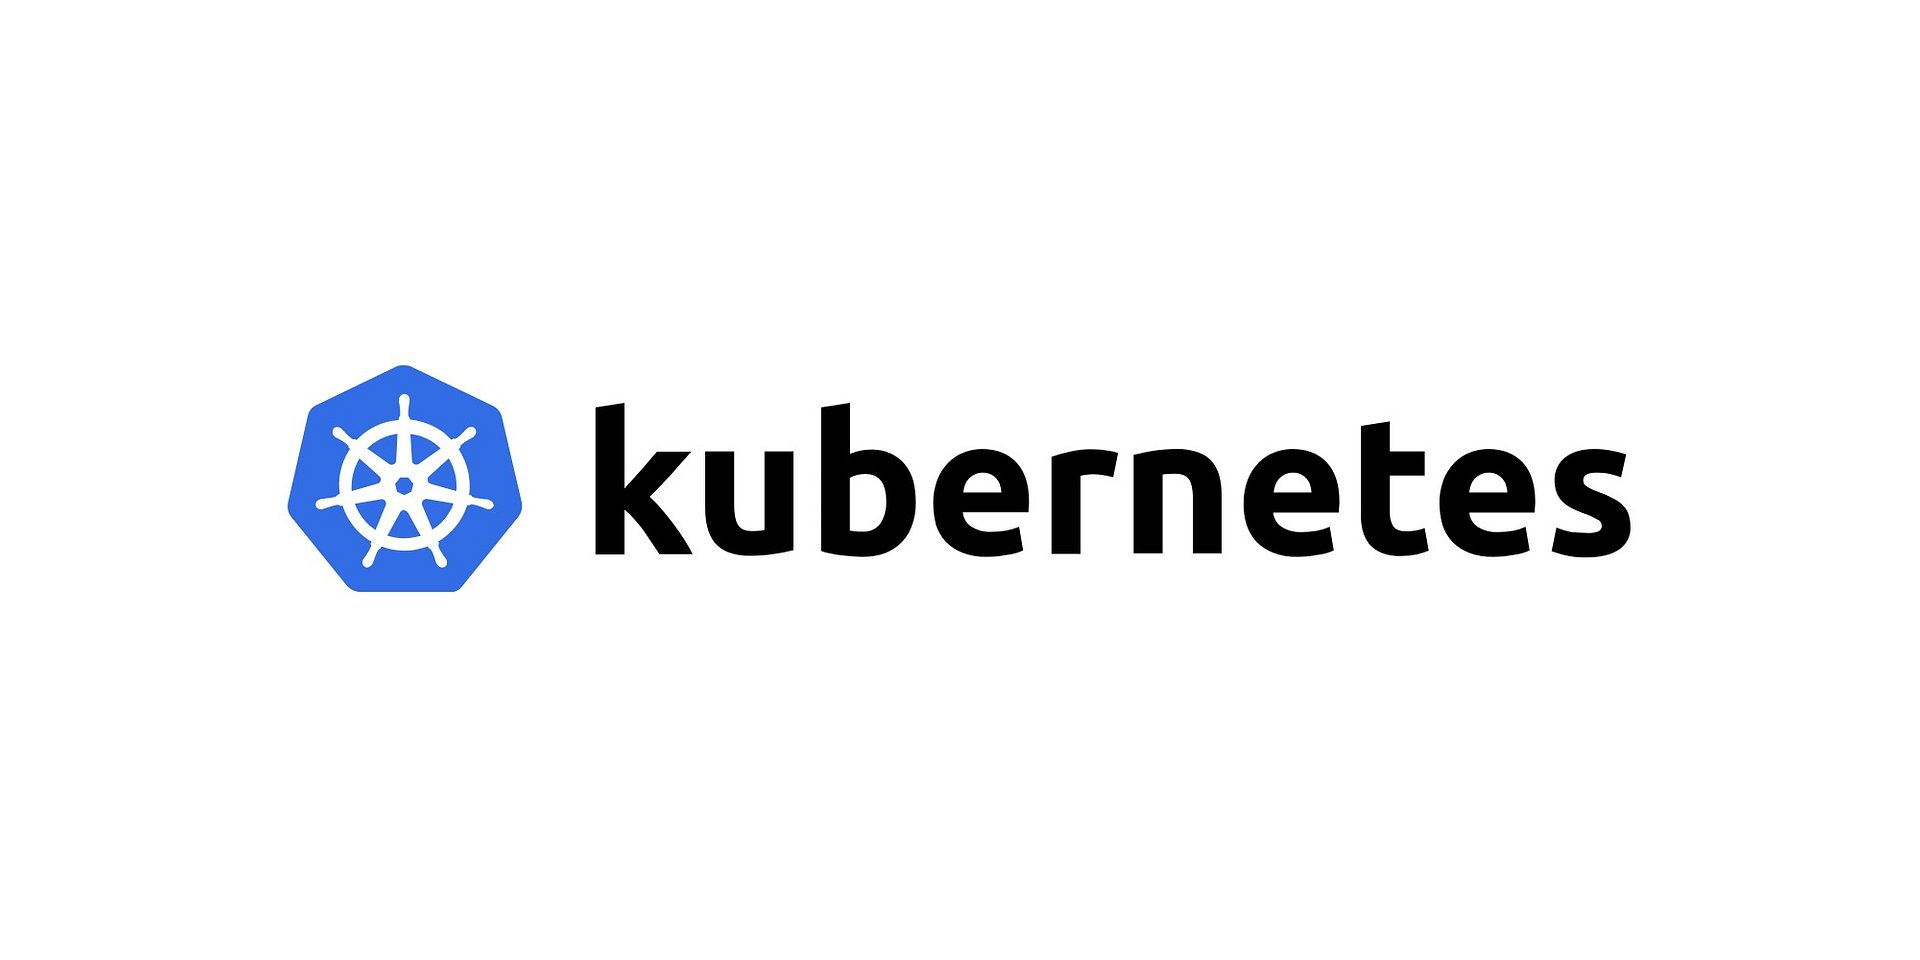 Kubernetes takes centre stage in 2019: why should CIOs care?